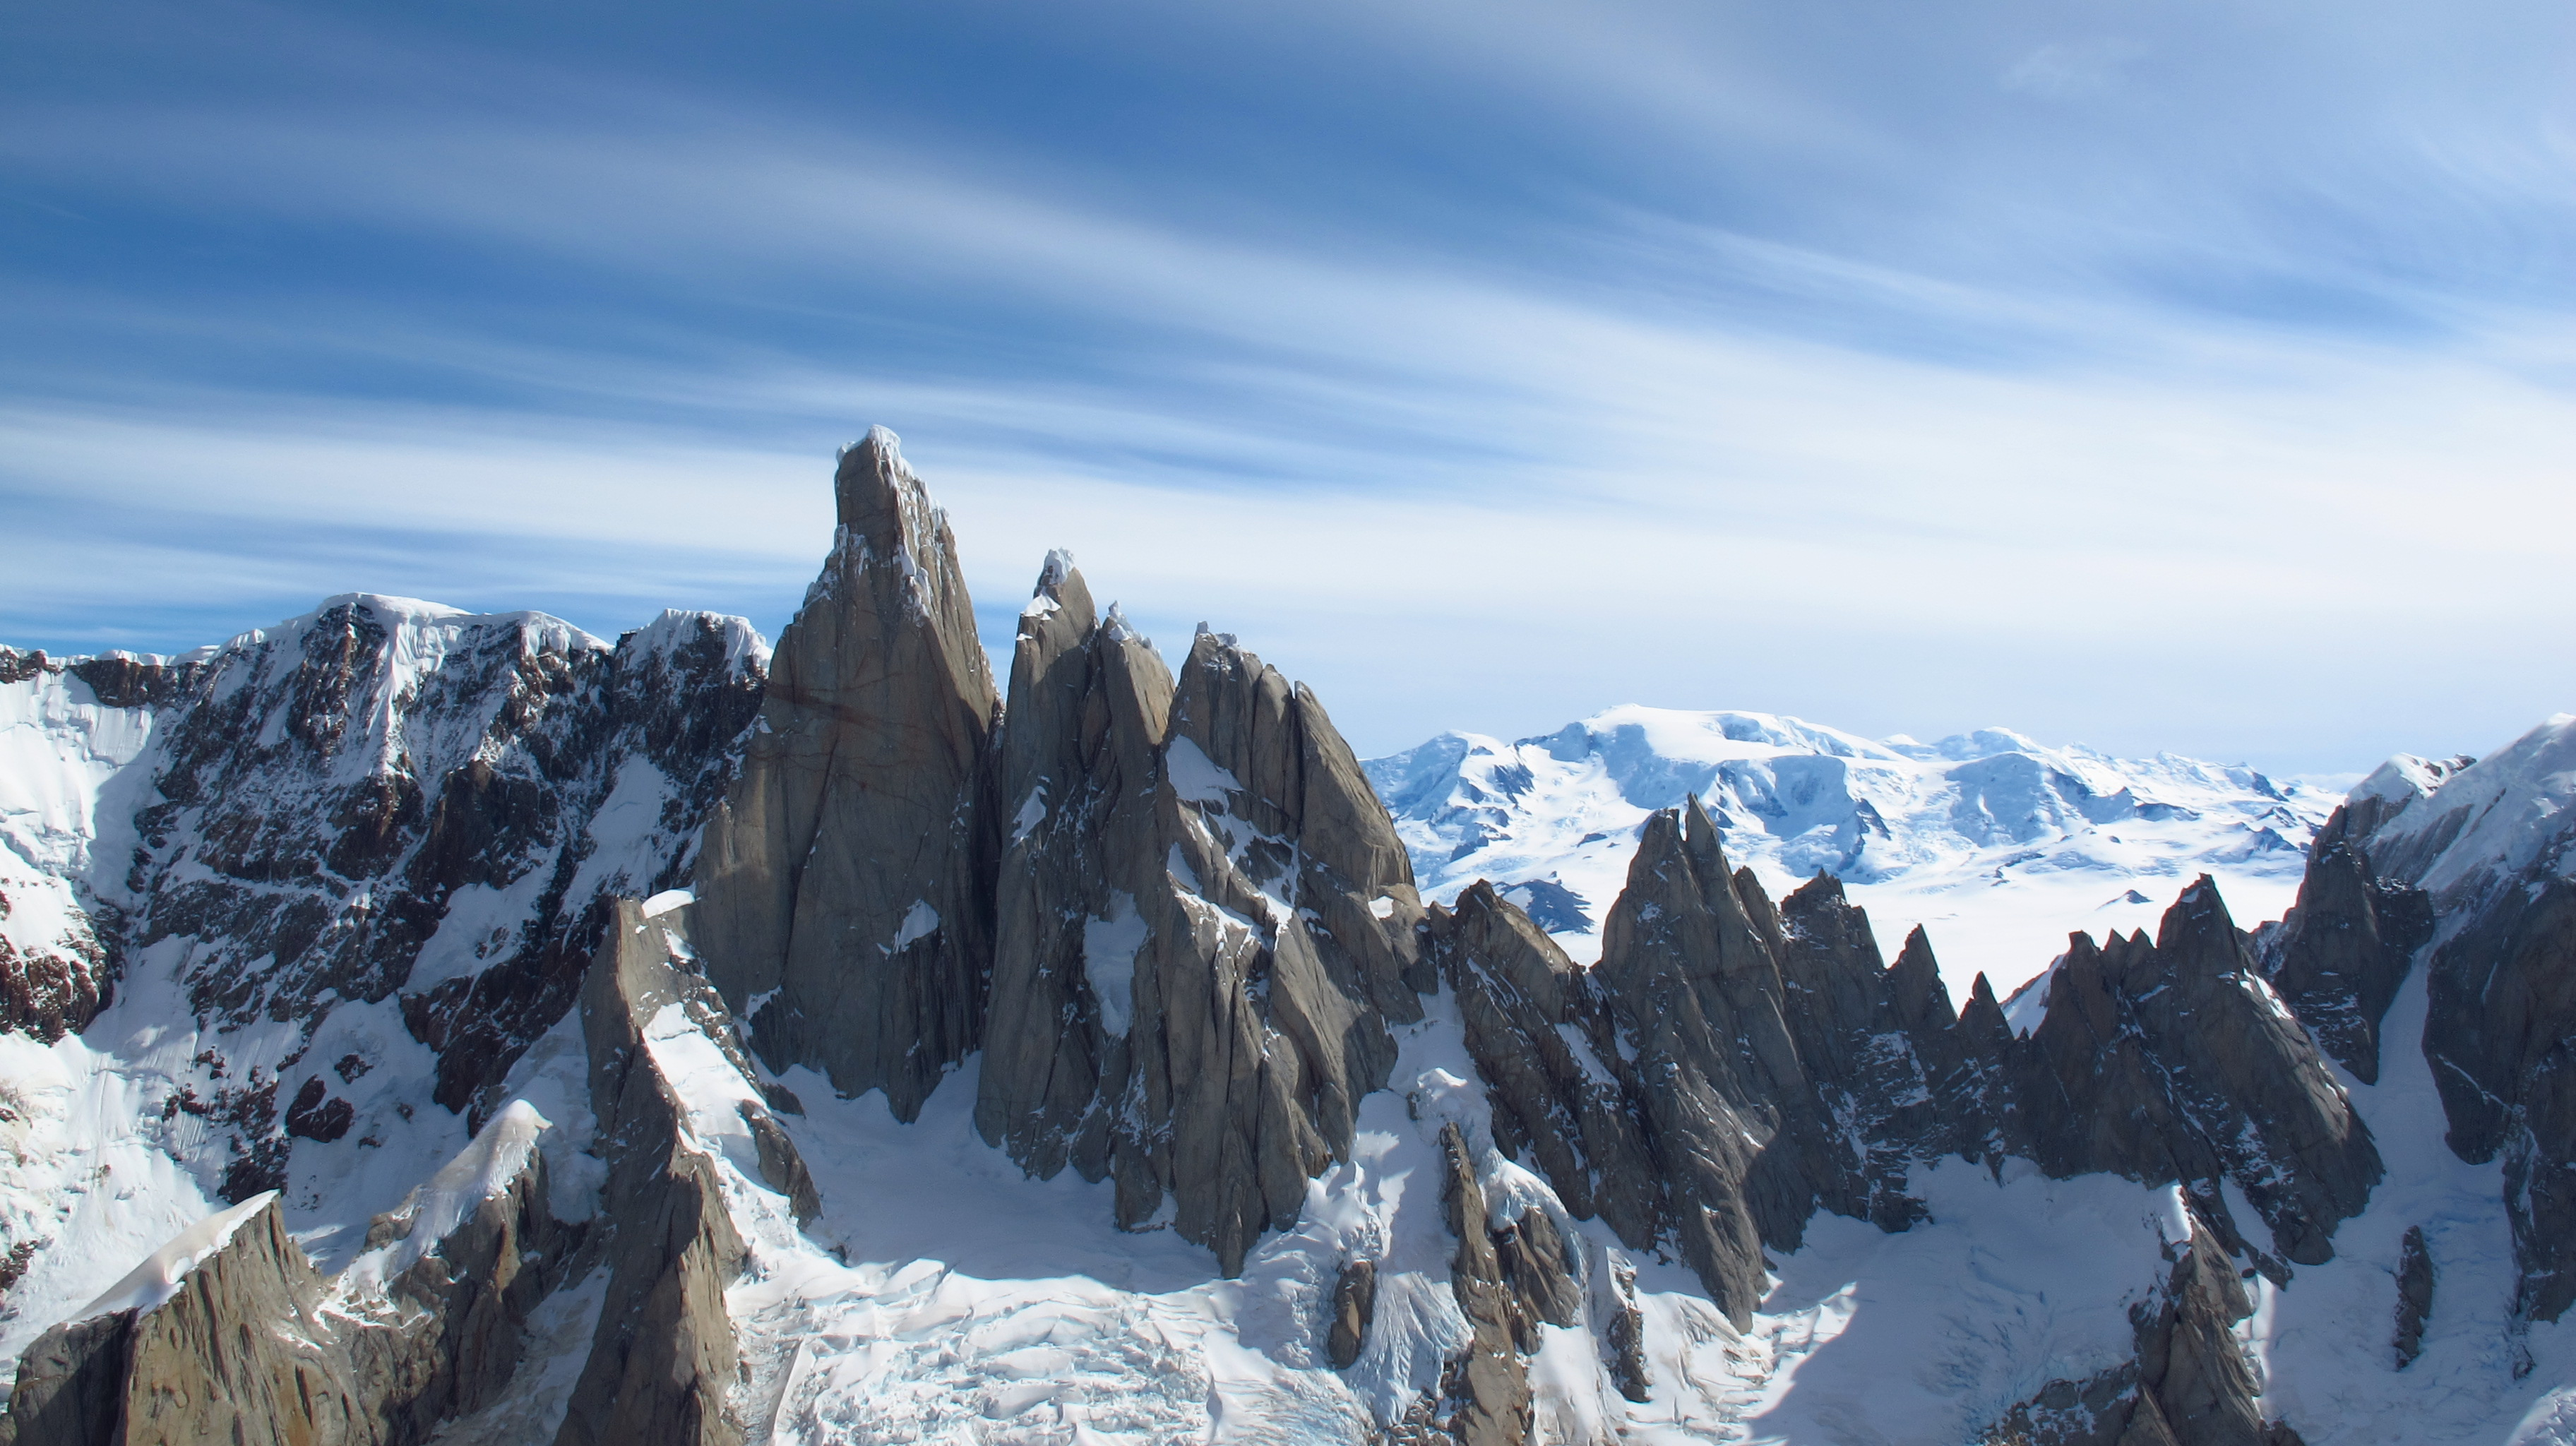 High Resolution Wallpaper | Cerro Torre 3648x2048 px